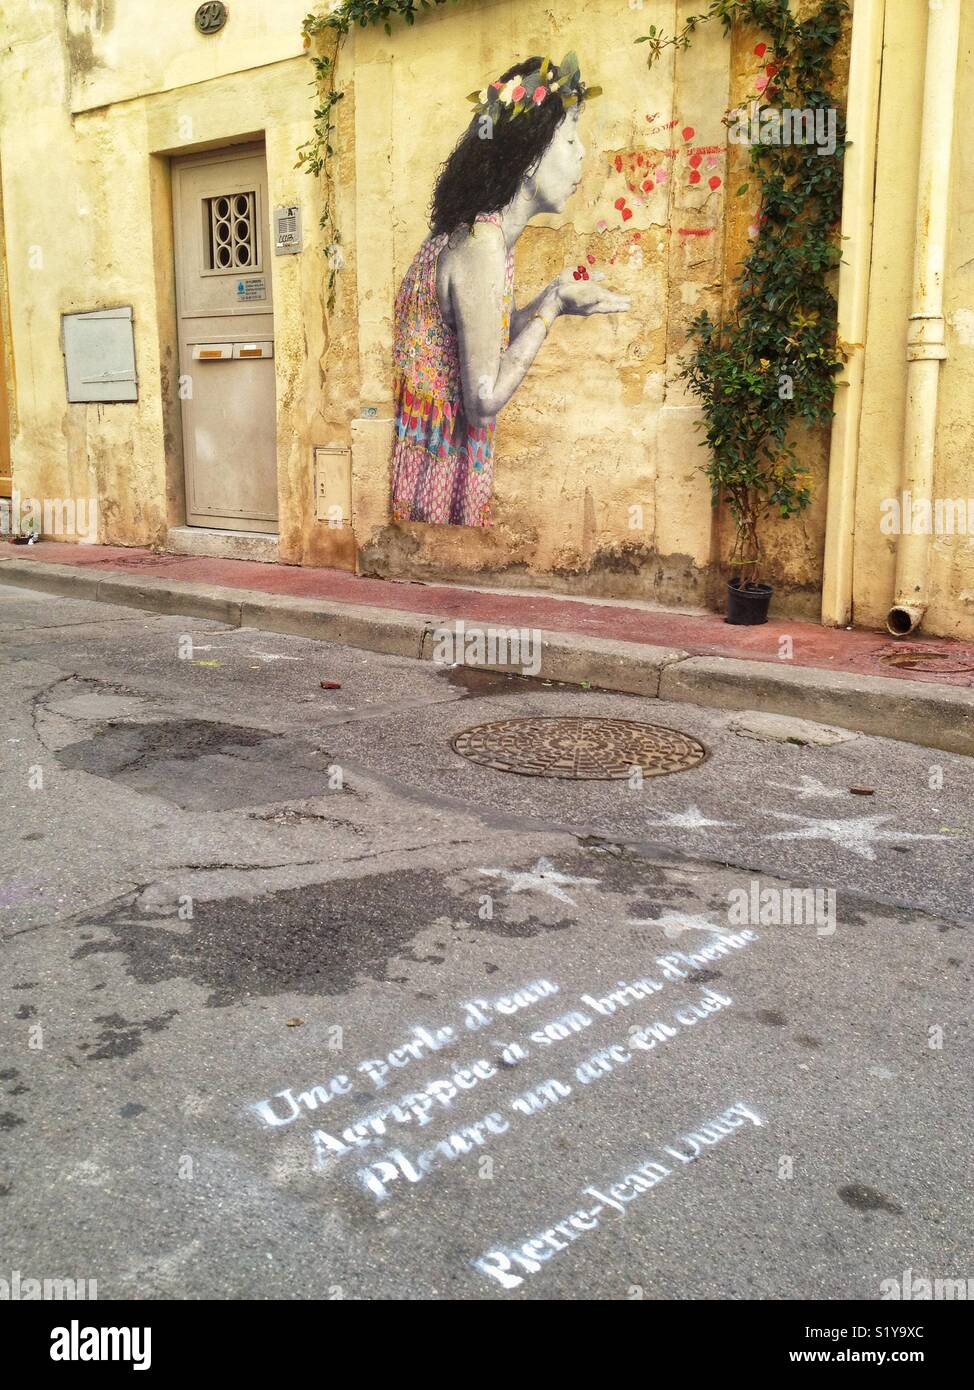 Graffiti and poetic sentence in a street, Montpellier France - Stock Image